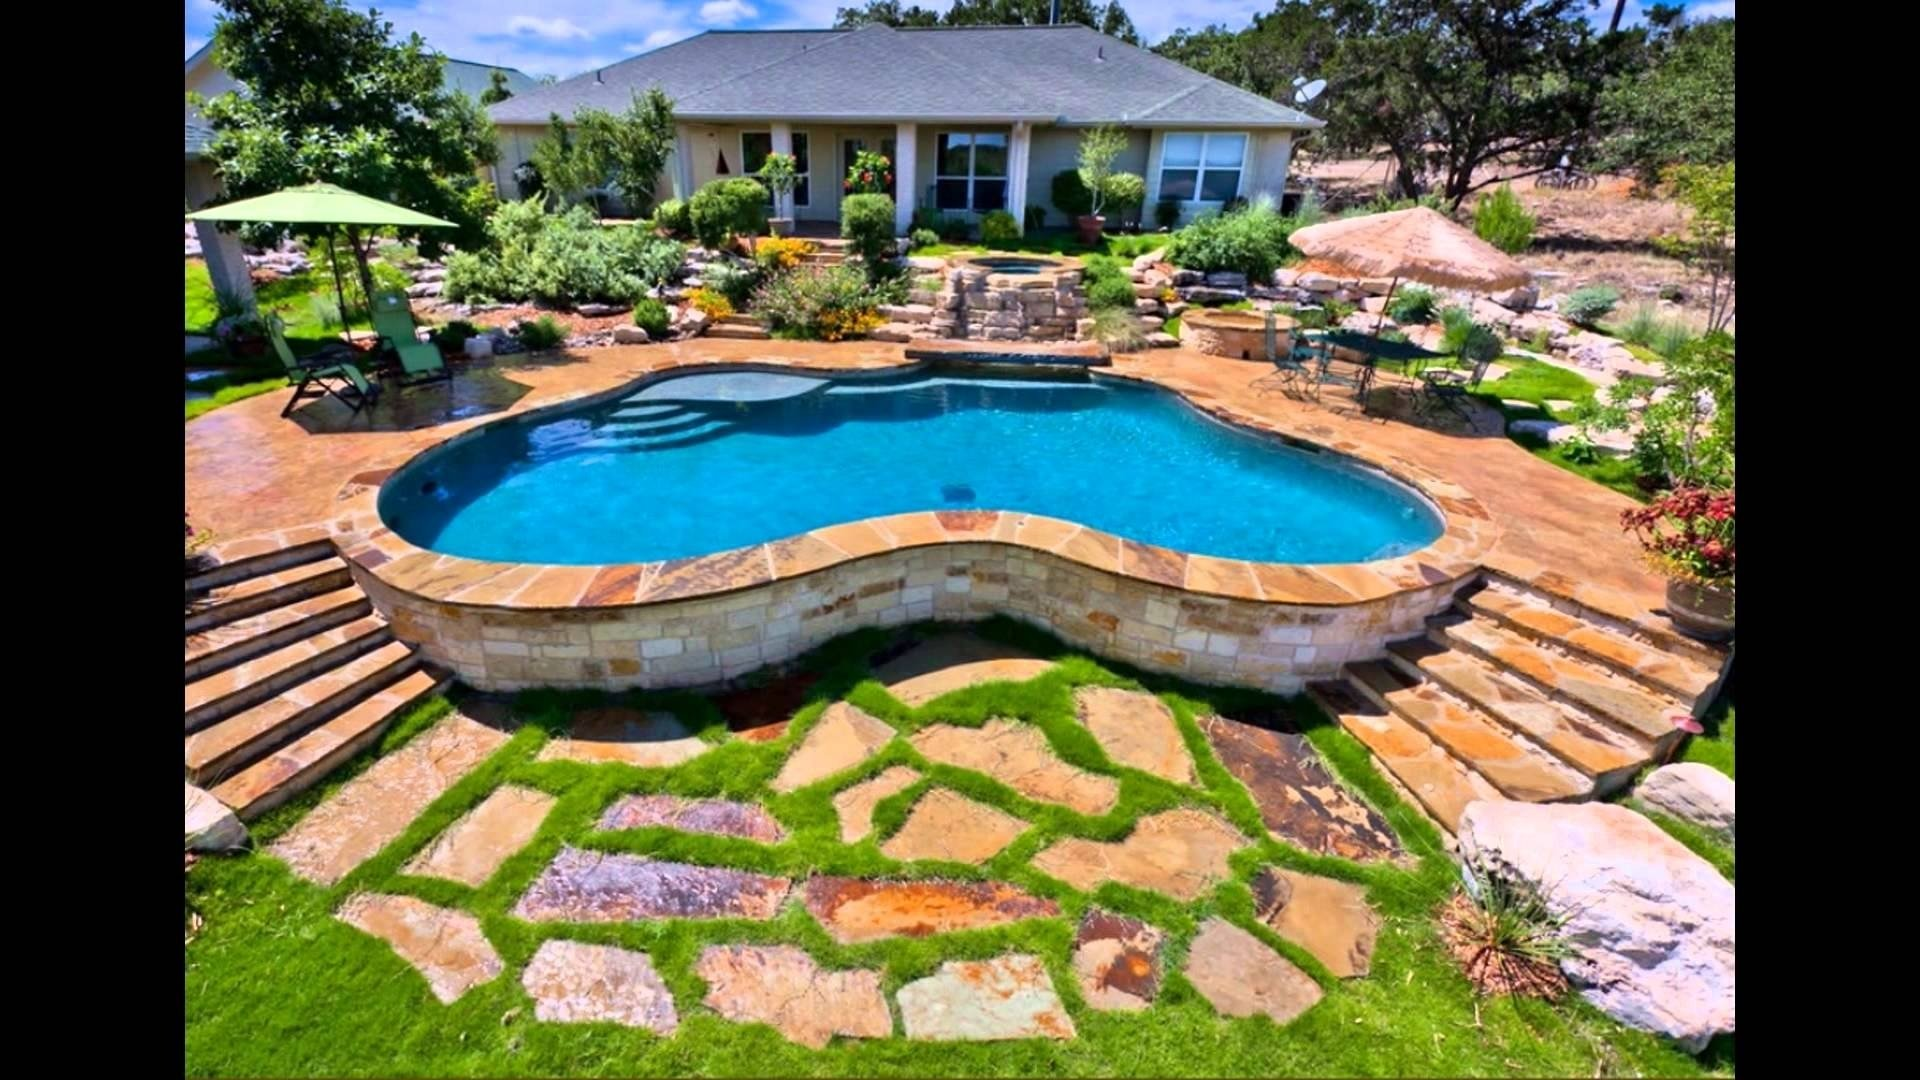 10 Famous Landscaping Ideas For Above Ground Pools above ground pool landscaping ideas free youtube 1